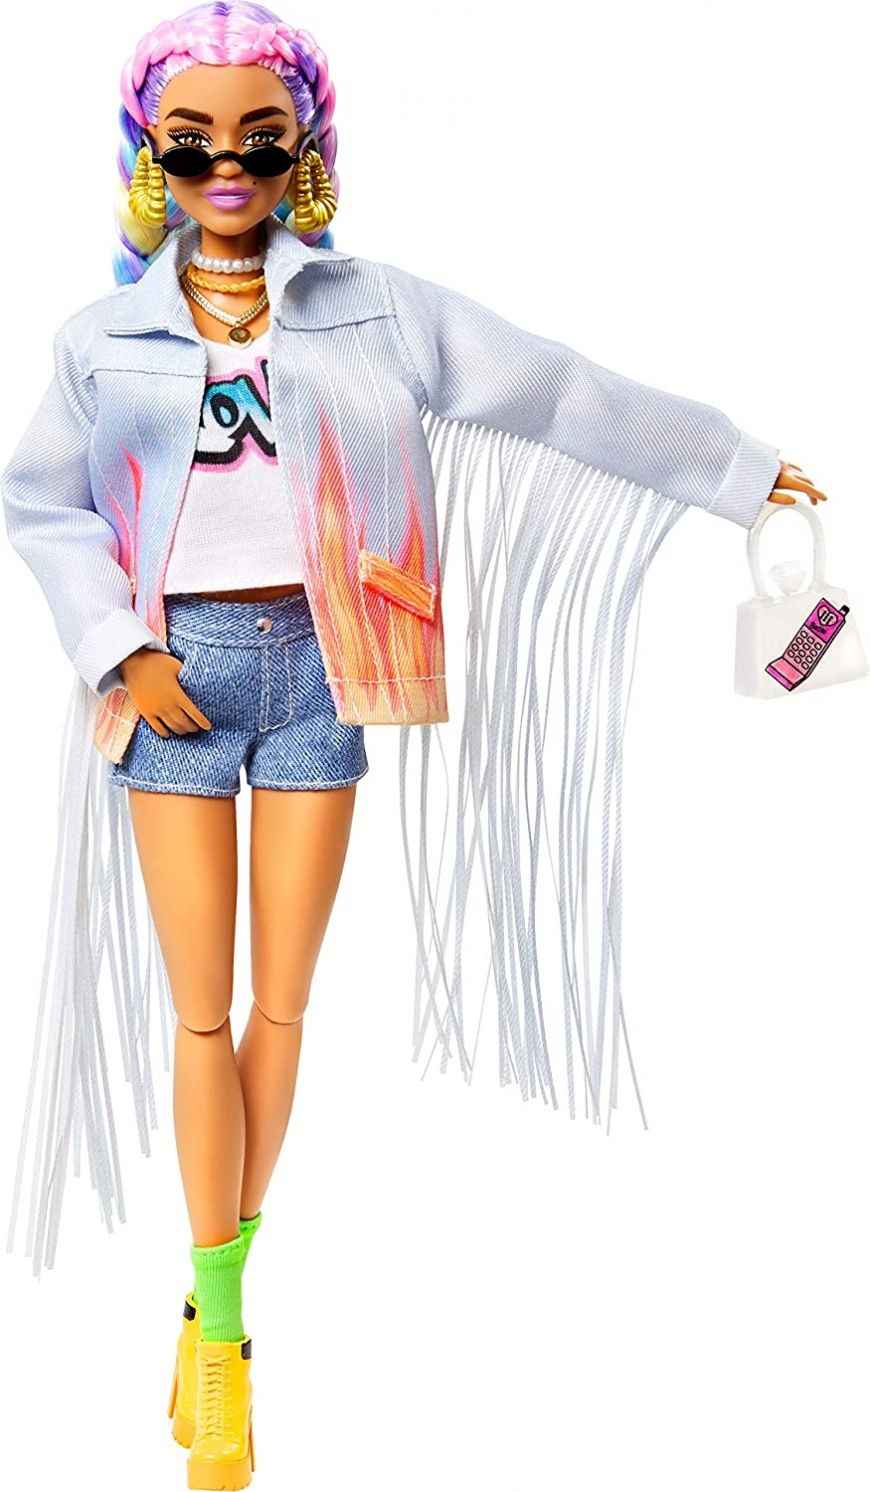 Barbie Extra Doll №5 in Long-Fringe Denim Jacket with Pet Puppy with  Rainbow Braids